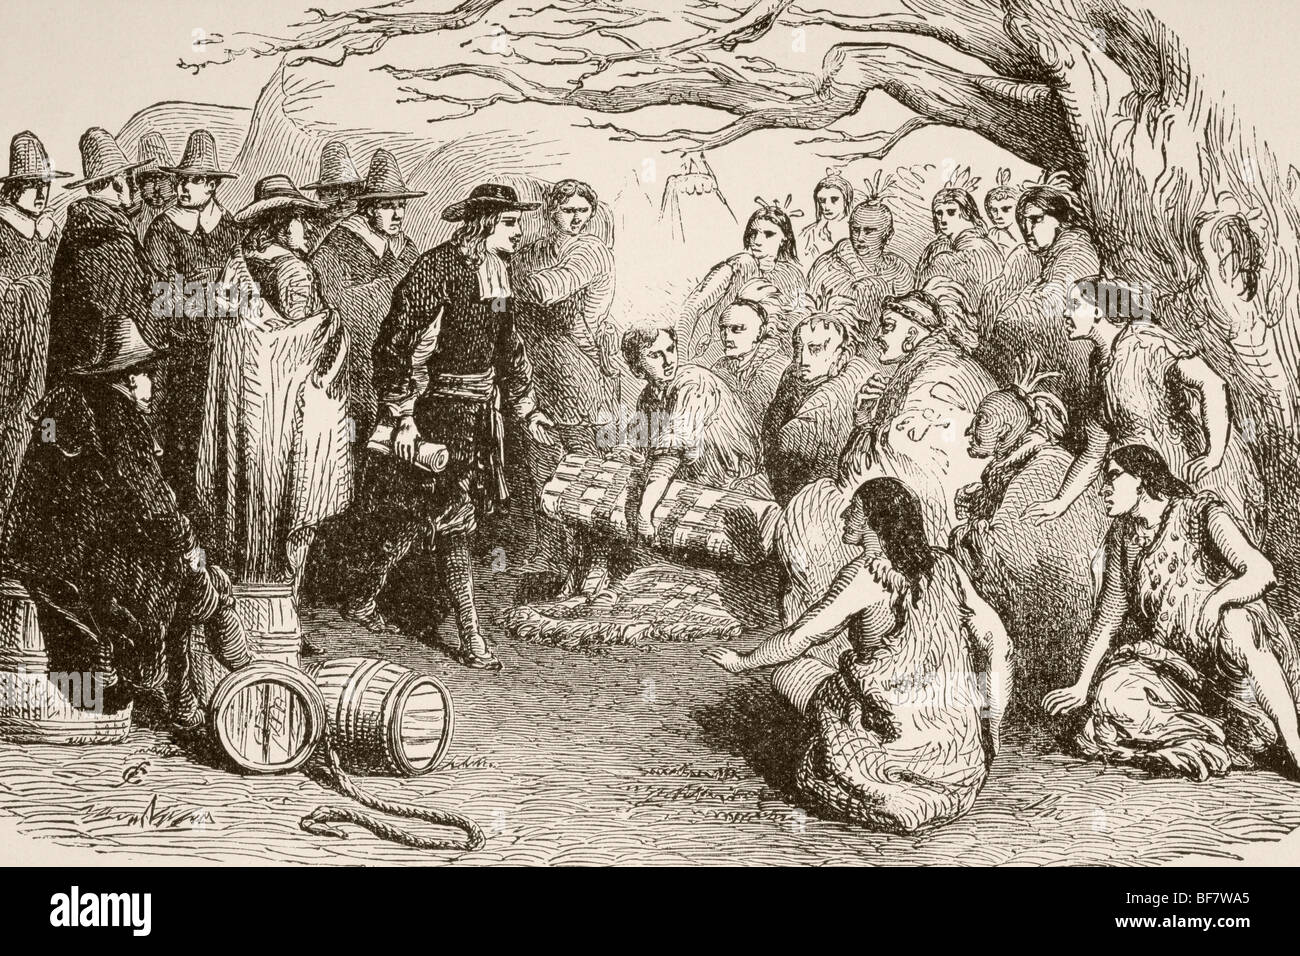 In 1682, William Penn makes a treaty with the Delaware or Lenape Indians  under the elm tree at Shackamaxon